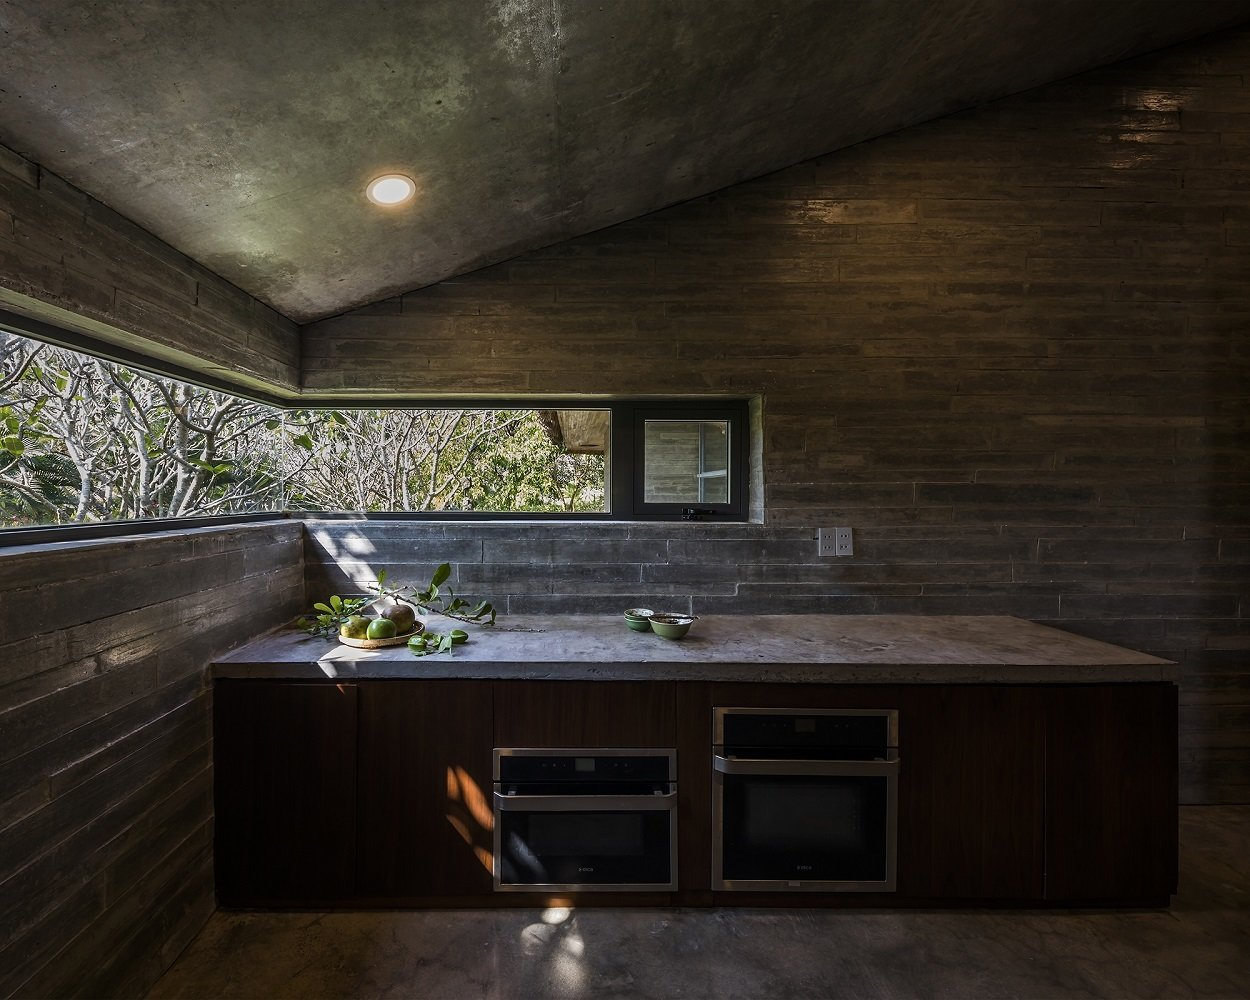 Kitchen, Concrete Counter, Wall Oven, Concrete Floor, Ceiling Lighting, and Microwave  Photo 8 of 16 in A Koi-Filled Moat Surrounds This Vietnamese House from Am house